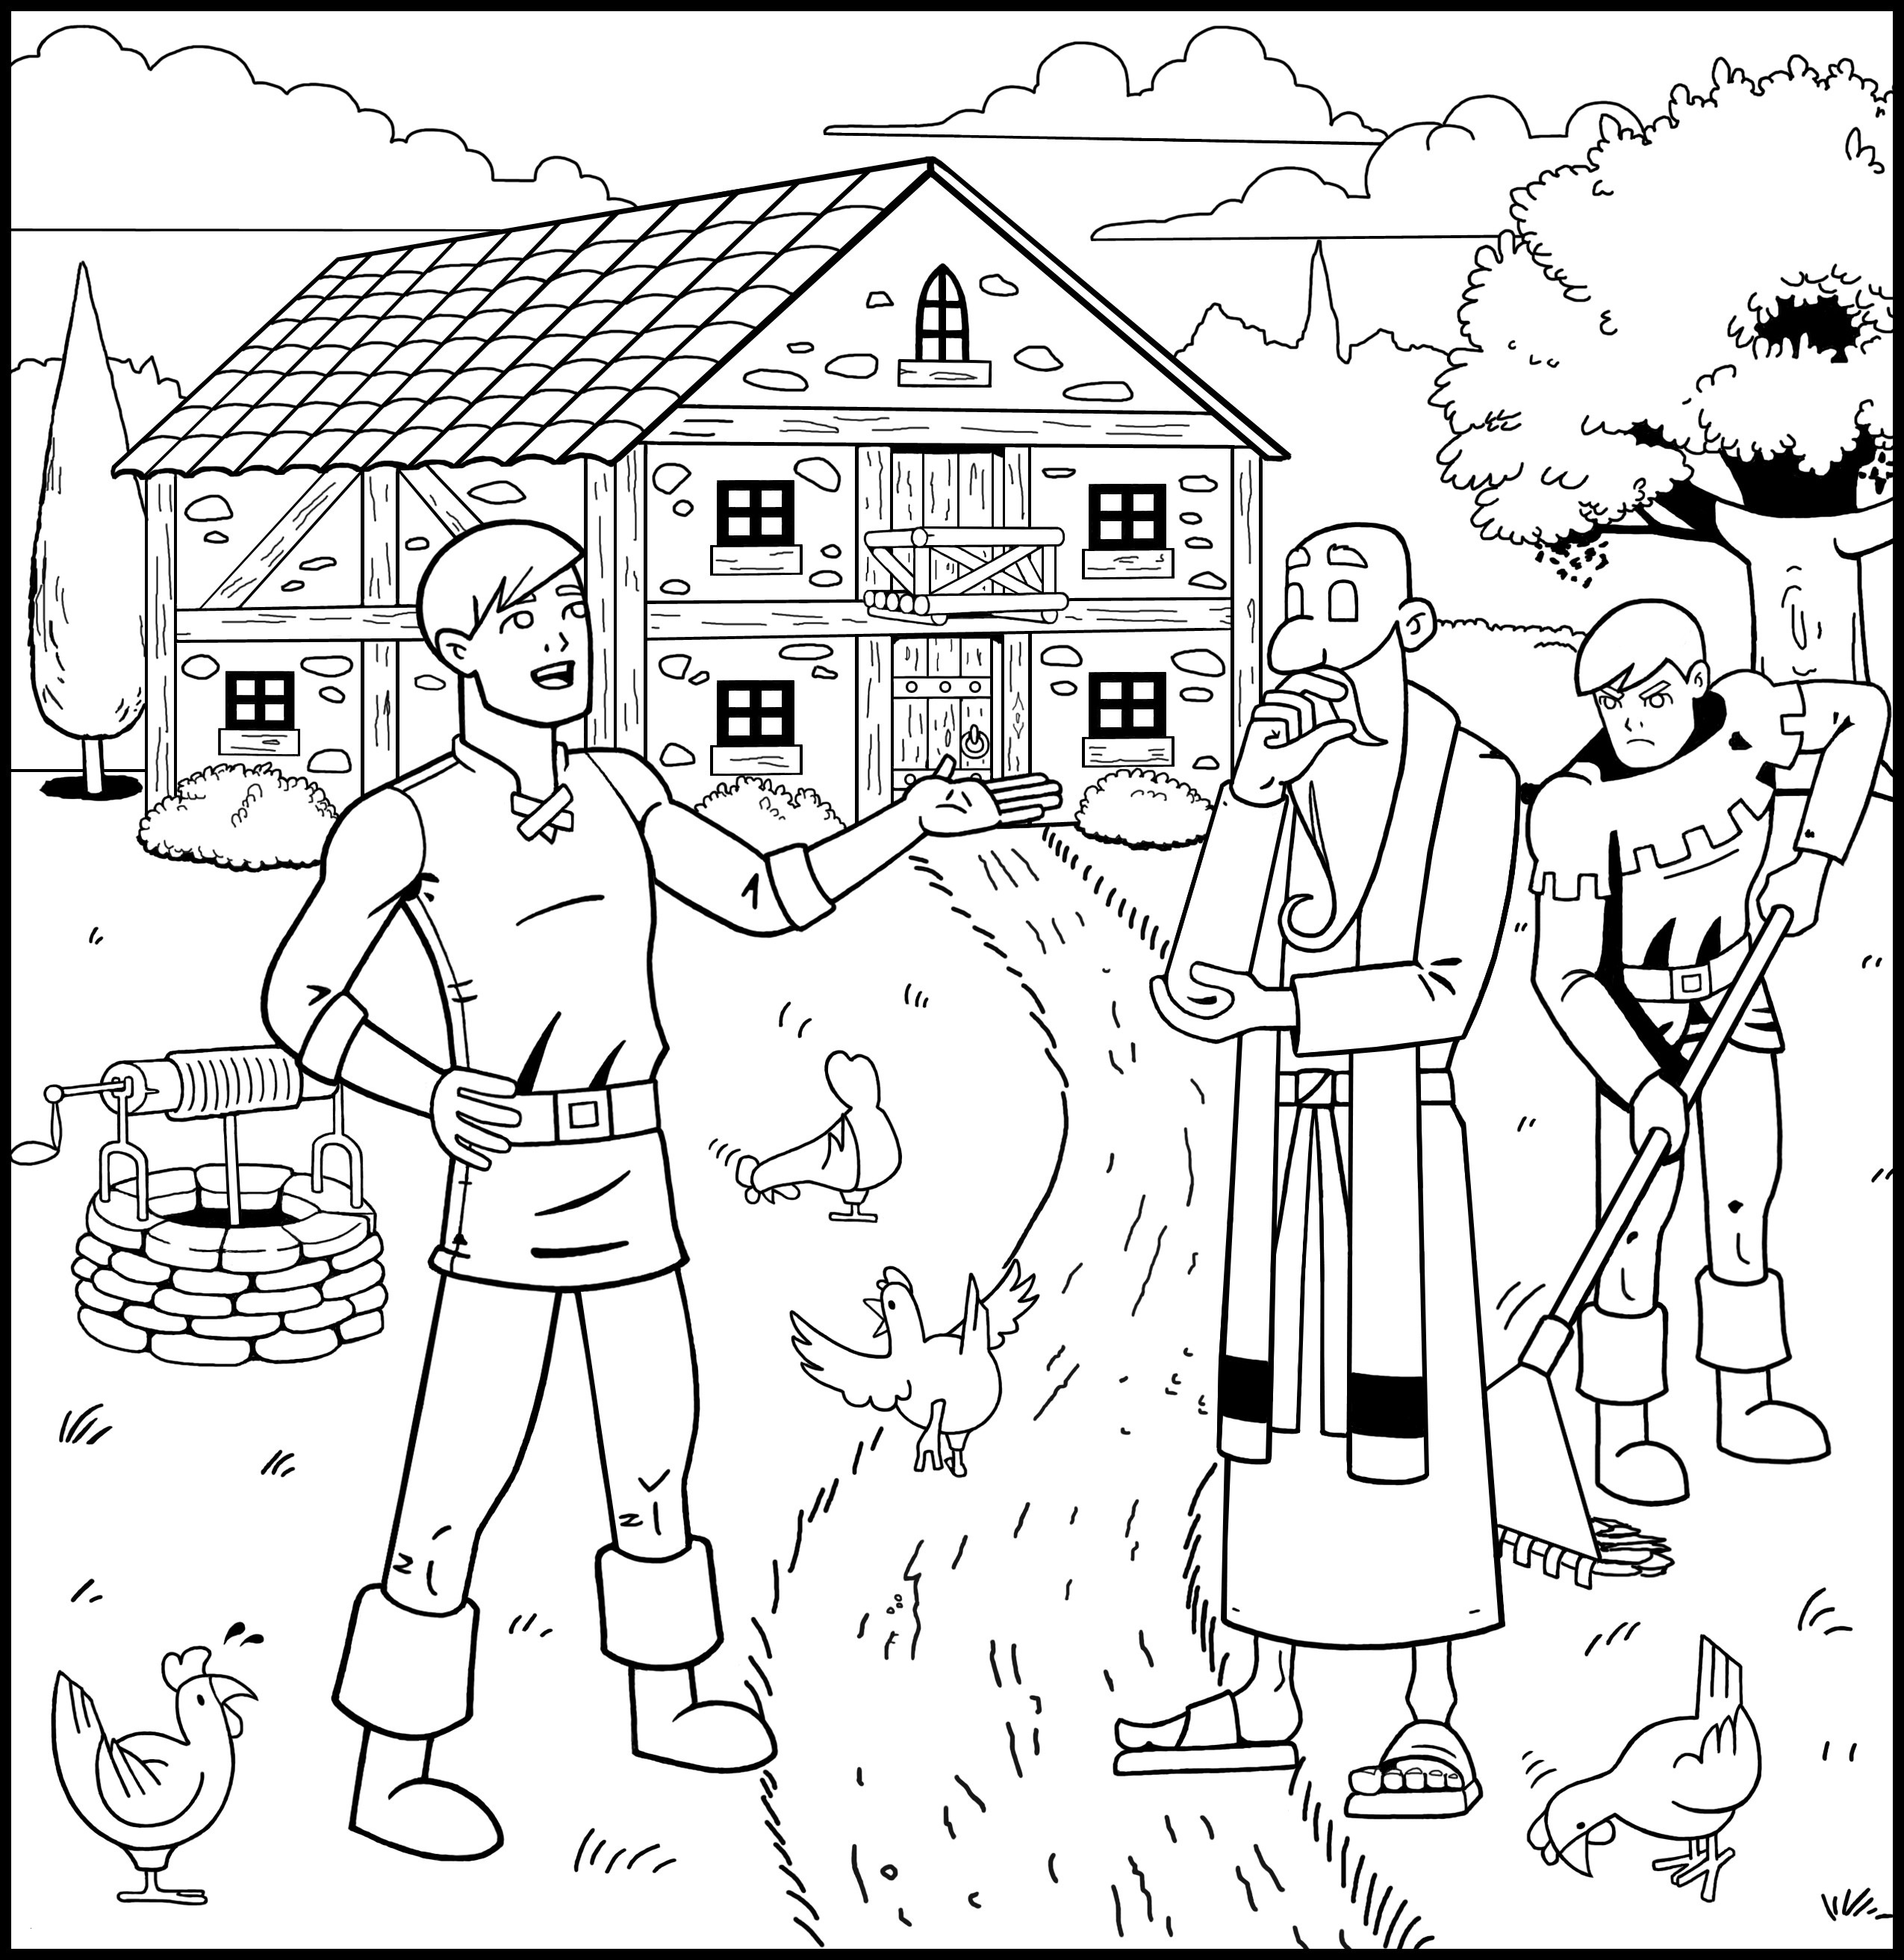 Prodical son Coloring Pages  to Print 15k - Free Download